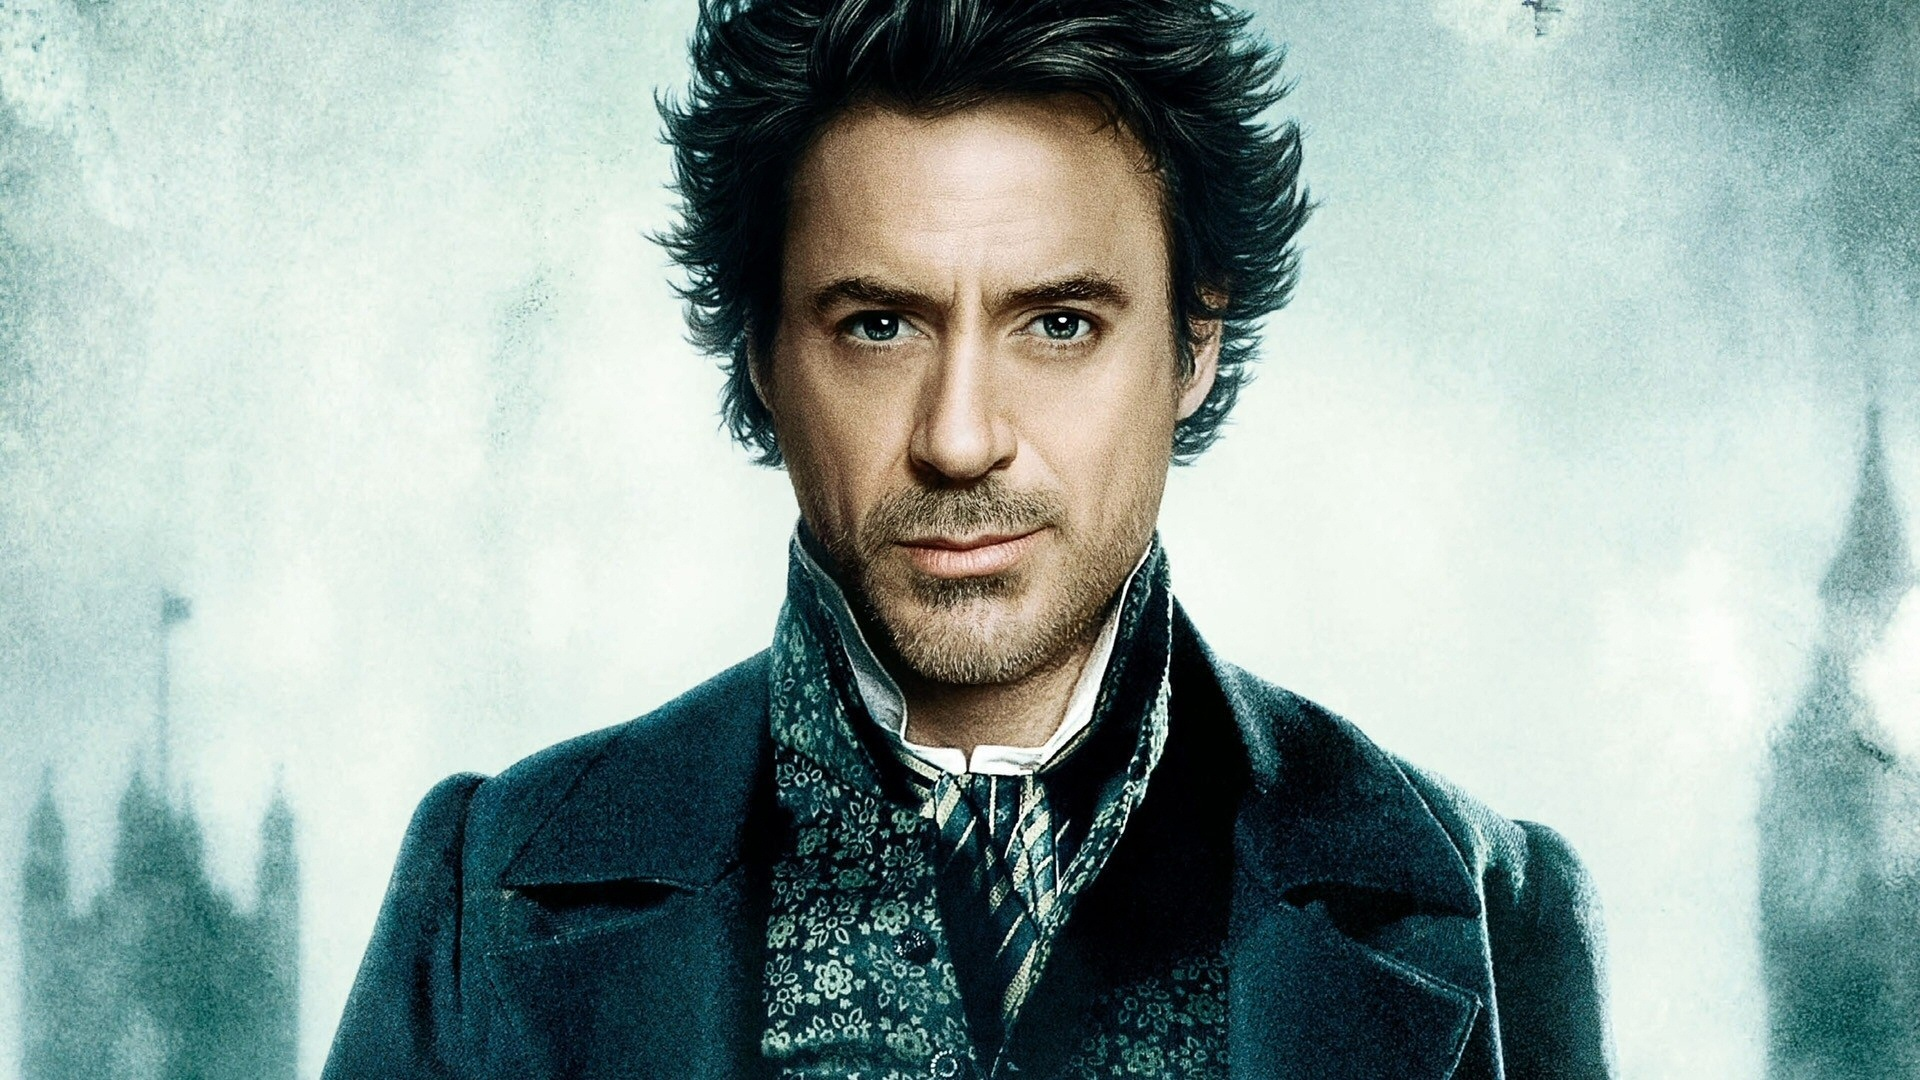 Robert Downey Jr Wallpapers High Resolution and Quality ...